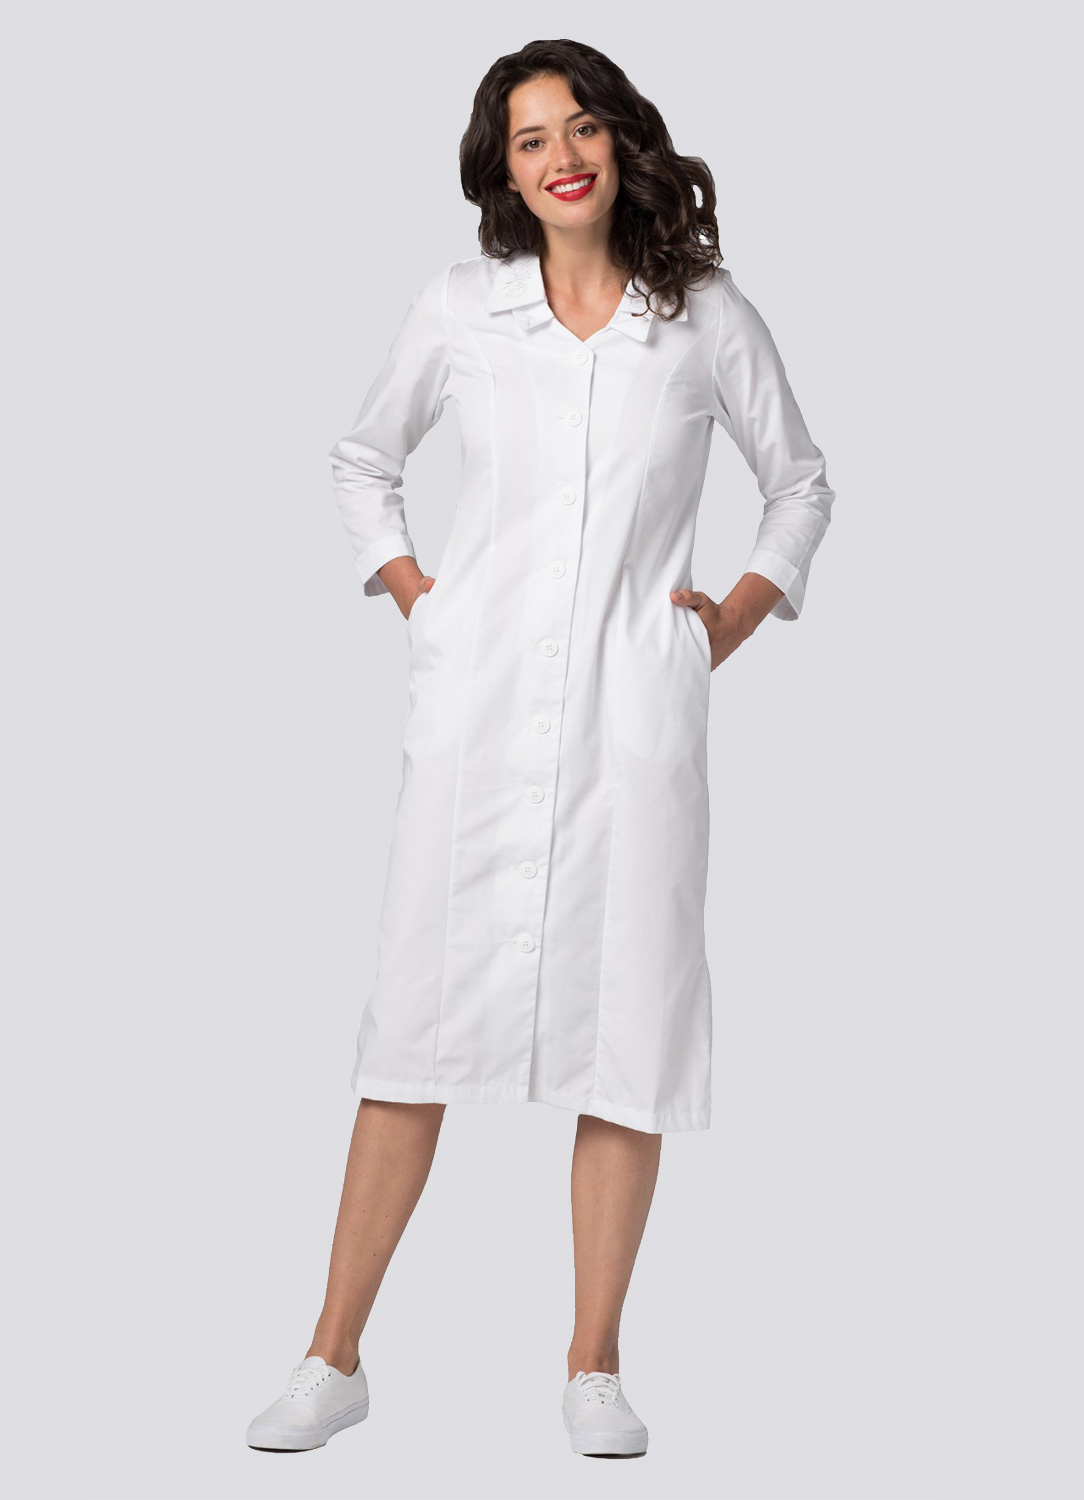 Double Embroidered Collar Dress